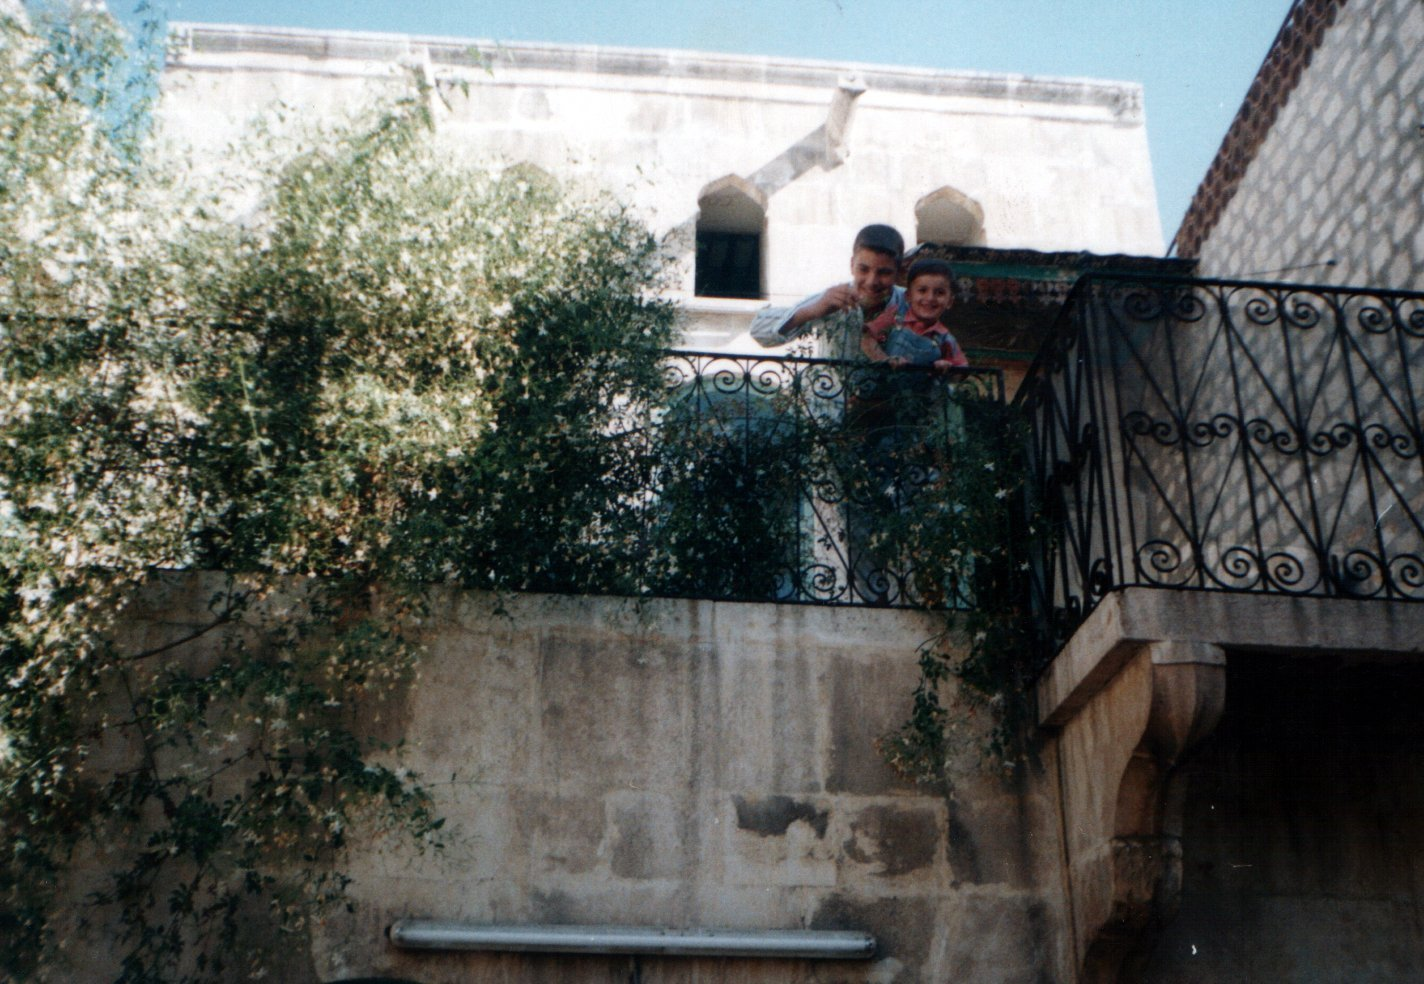 Hakam holding younger brother Shahim - around 2000